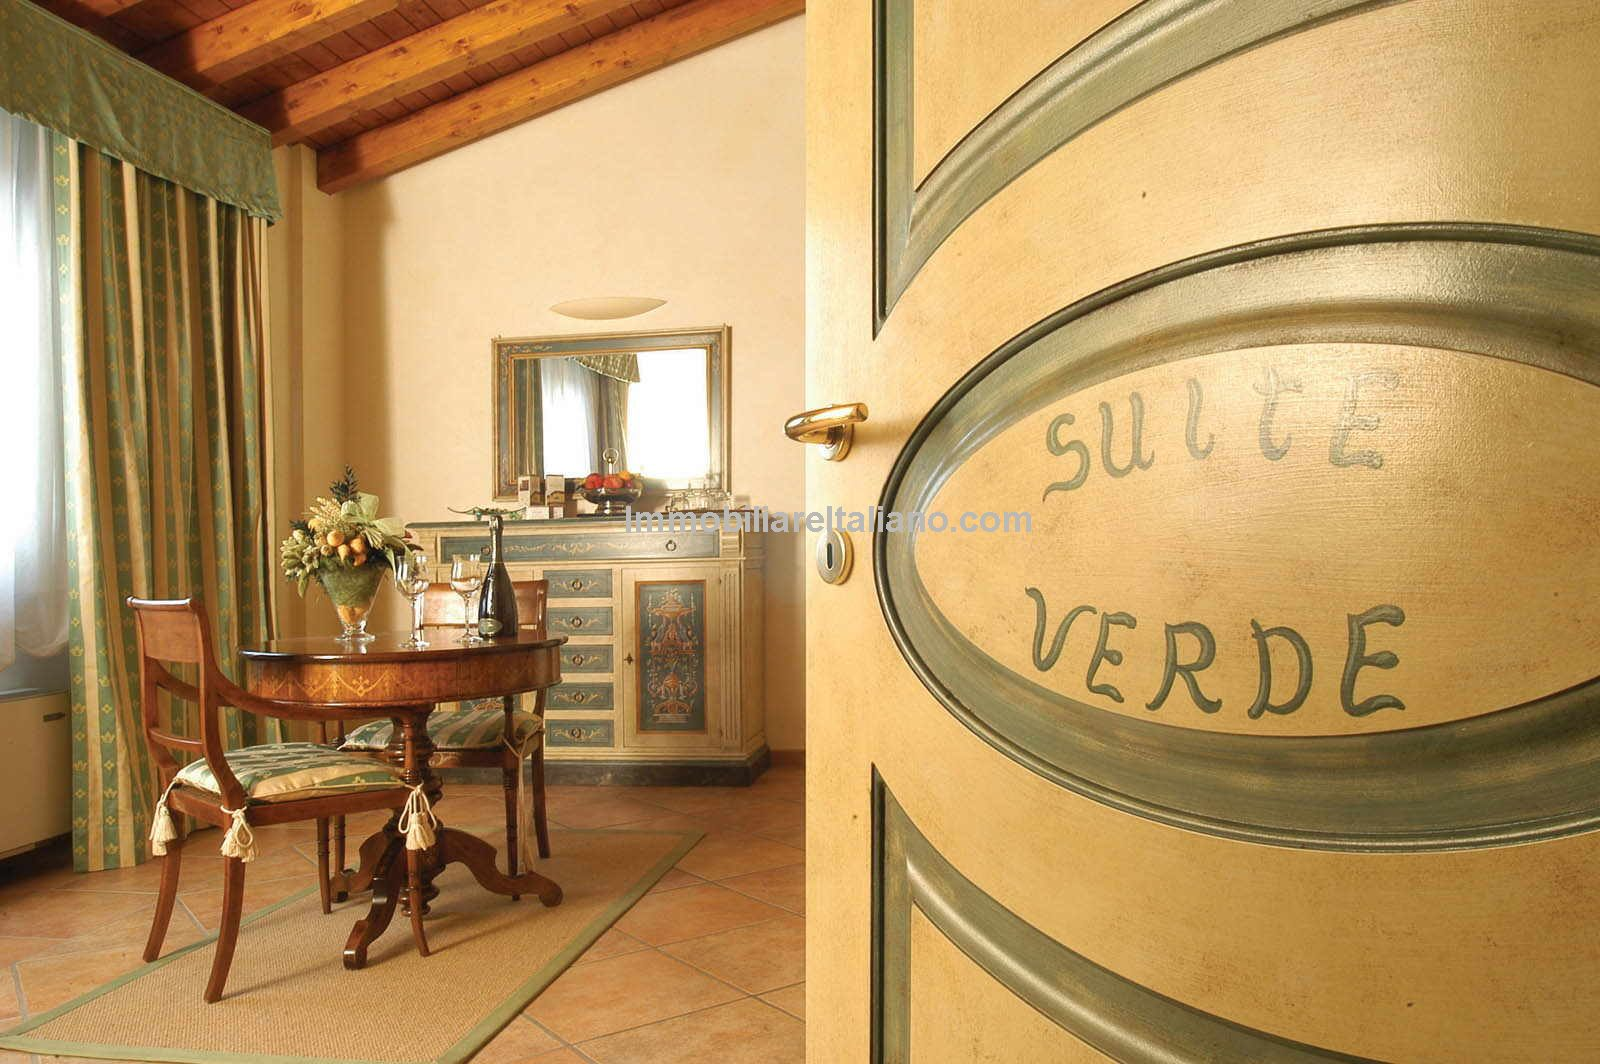 hotel for sale near milan immobiliare italiano